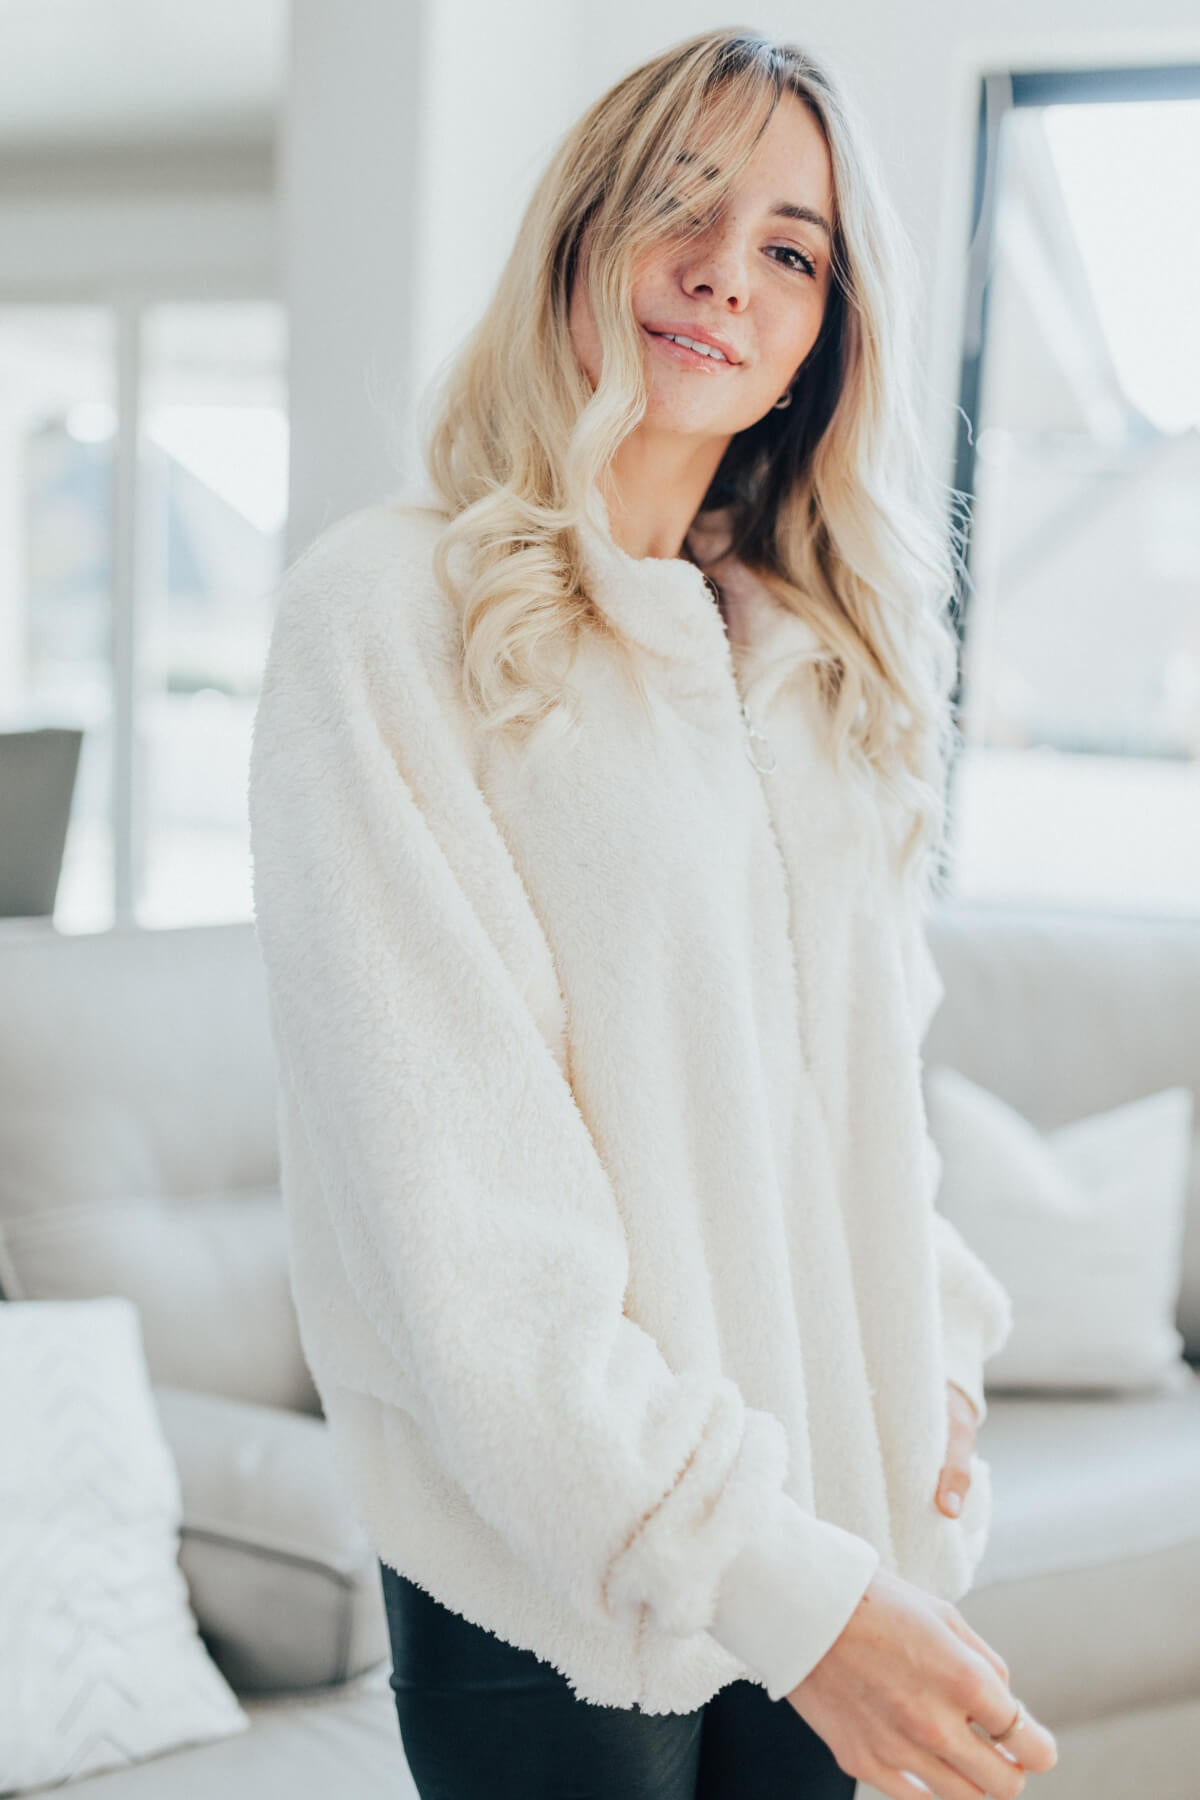 White High-Quality Fuzzy Material Boutique Pullovers for Women